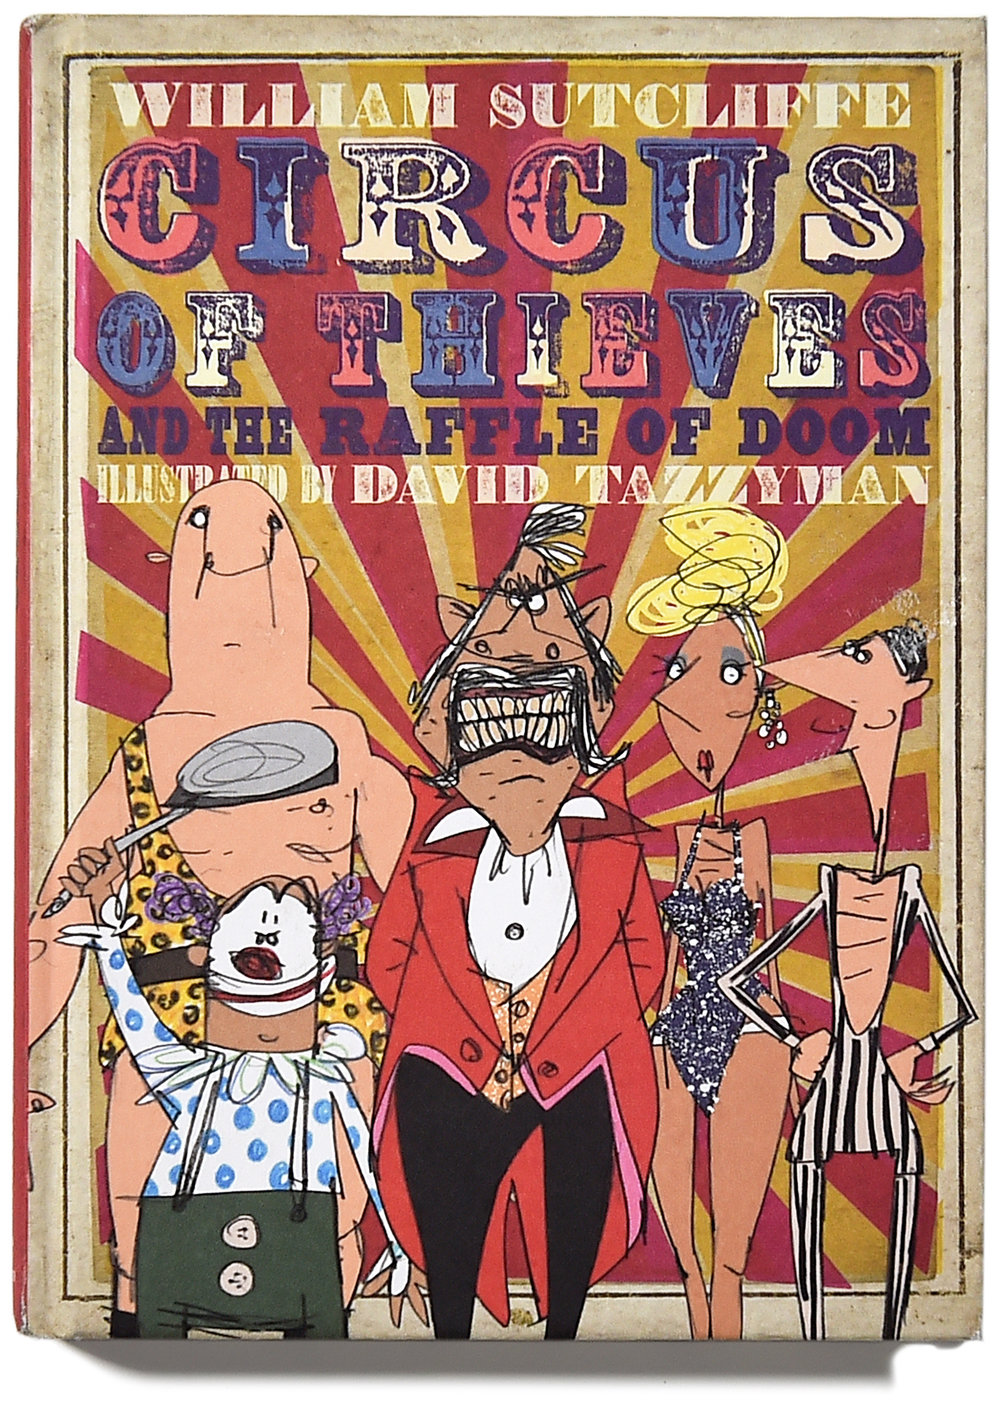 Circus of Thieves series